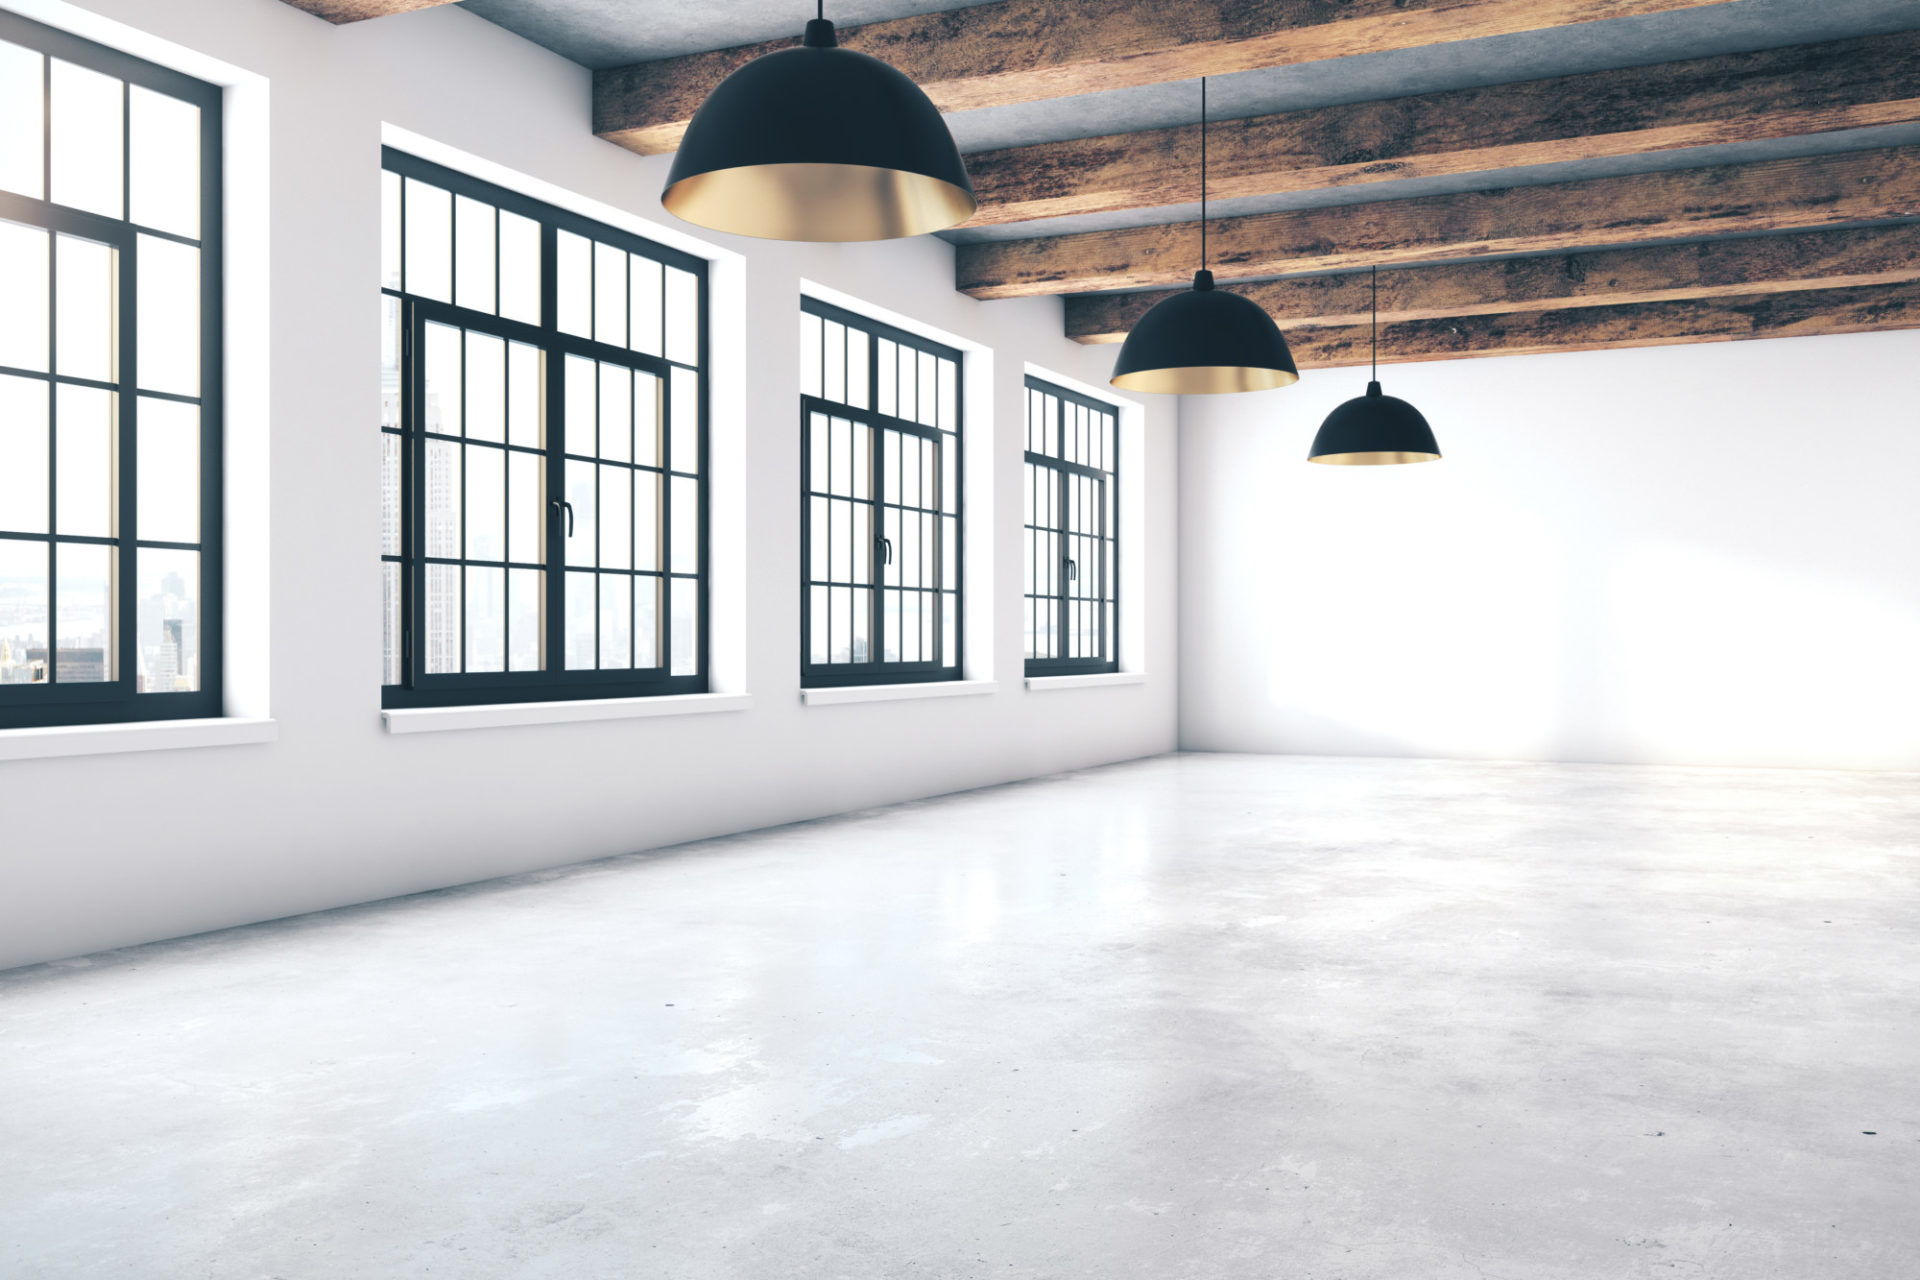 What questions should i ask when viewing apartments